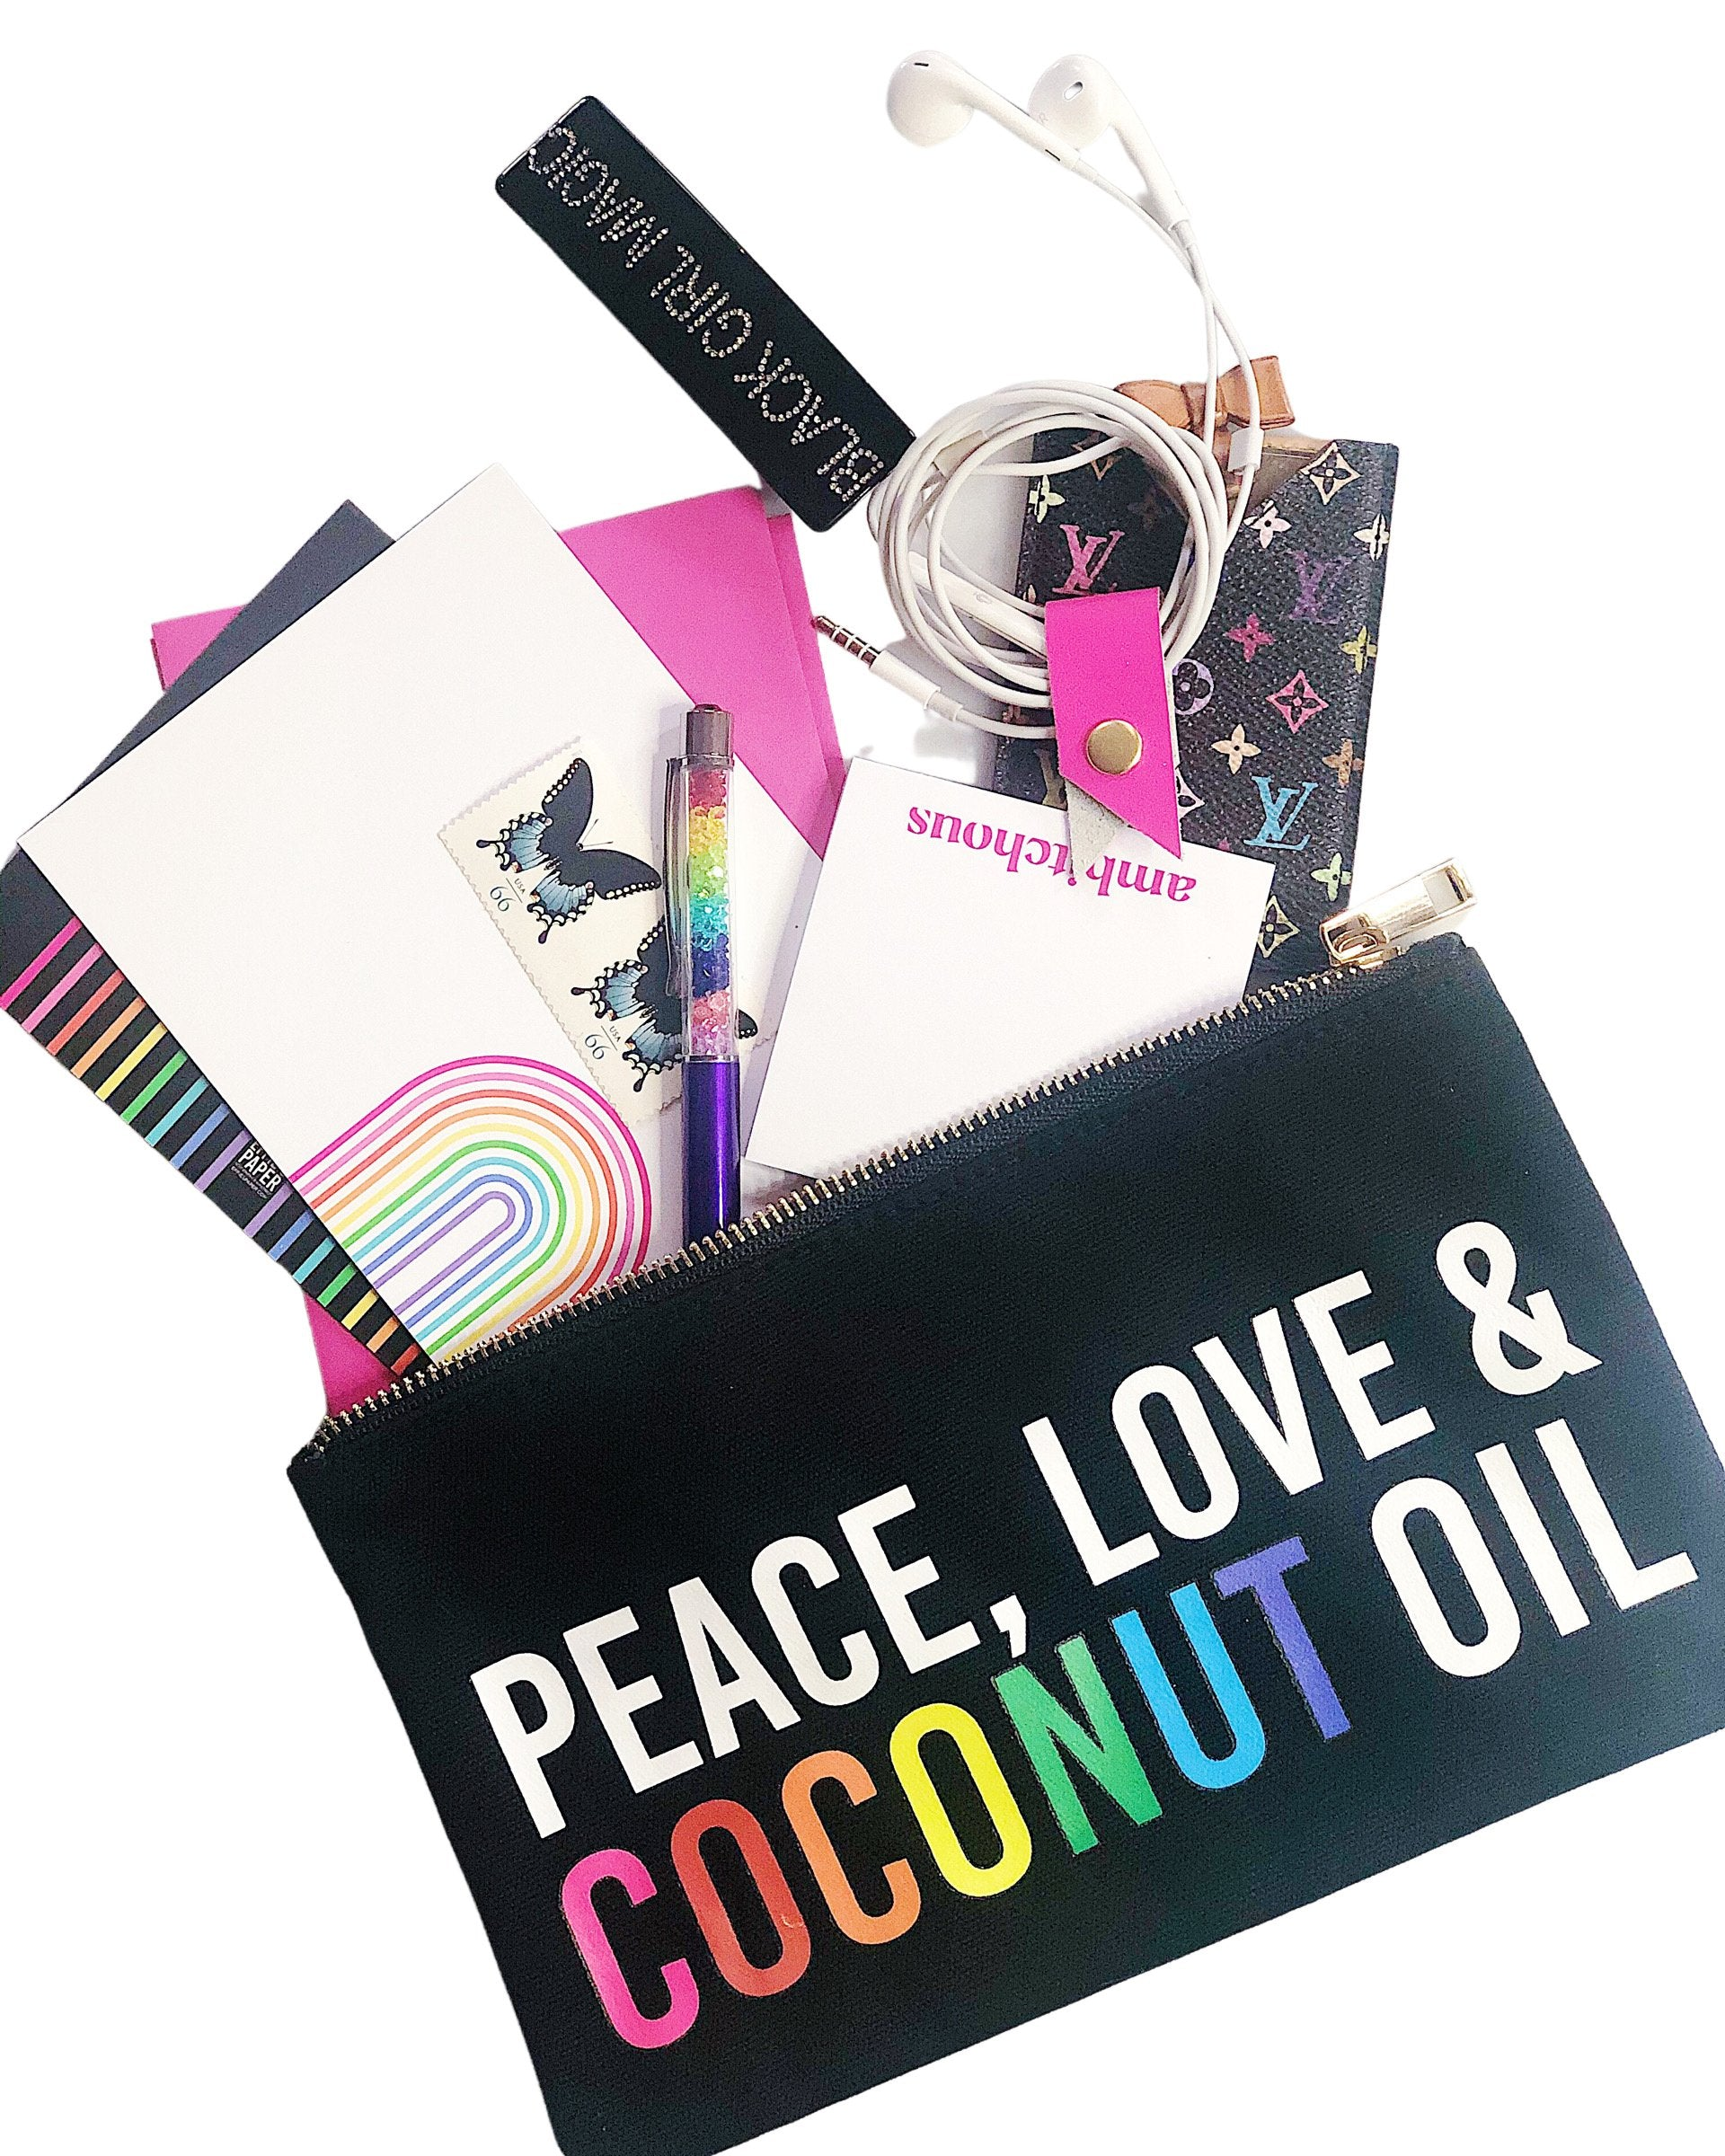 Peace Love Coconut Oil :: Makeup Bag